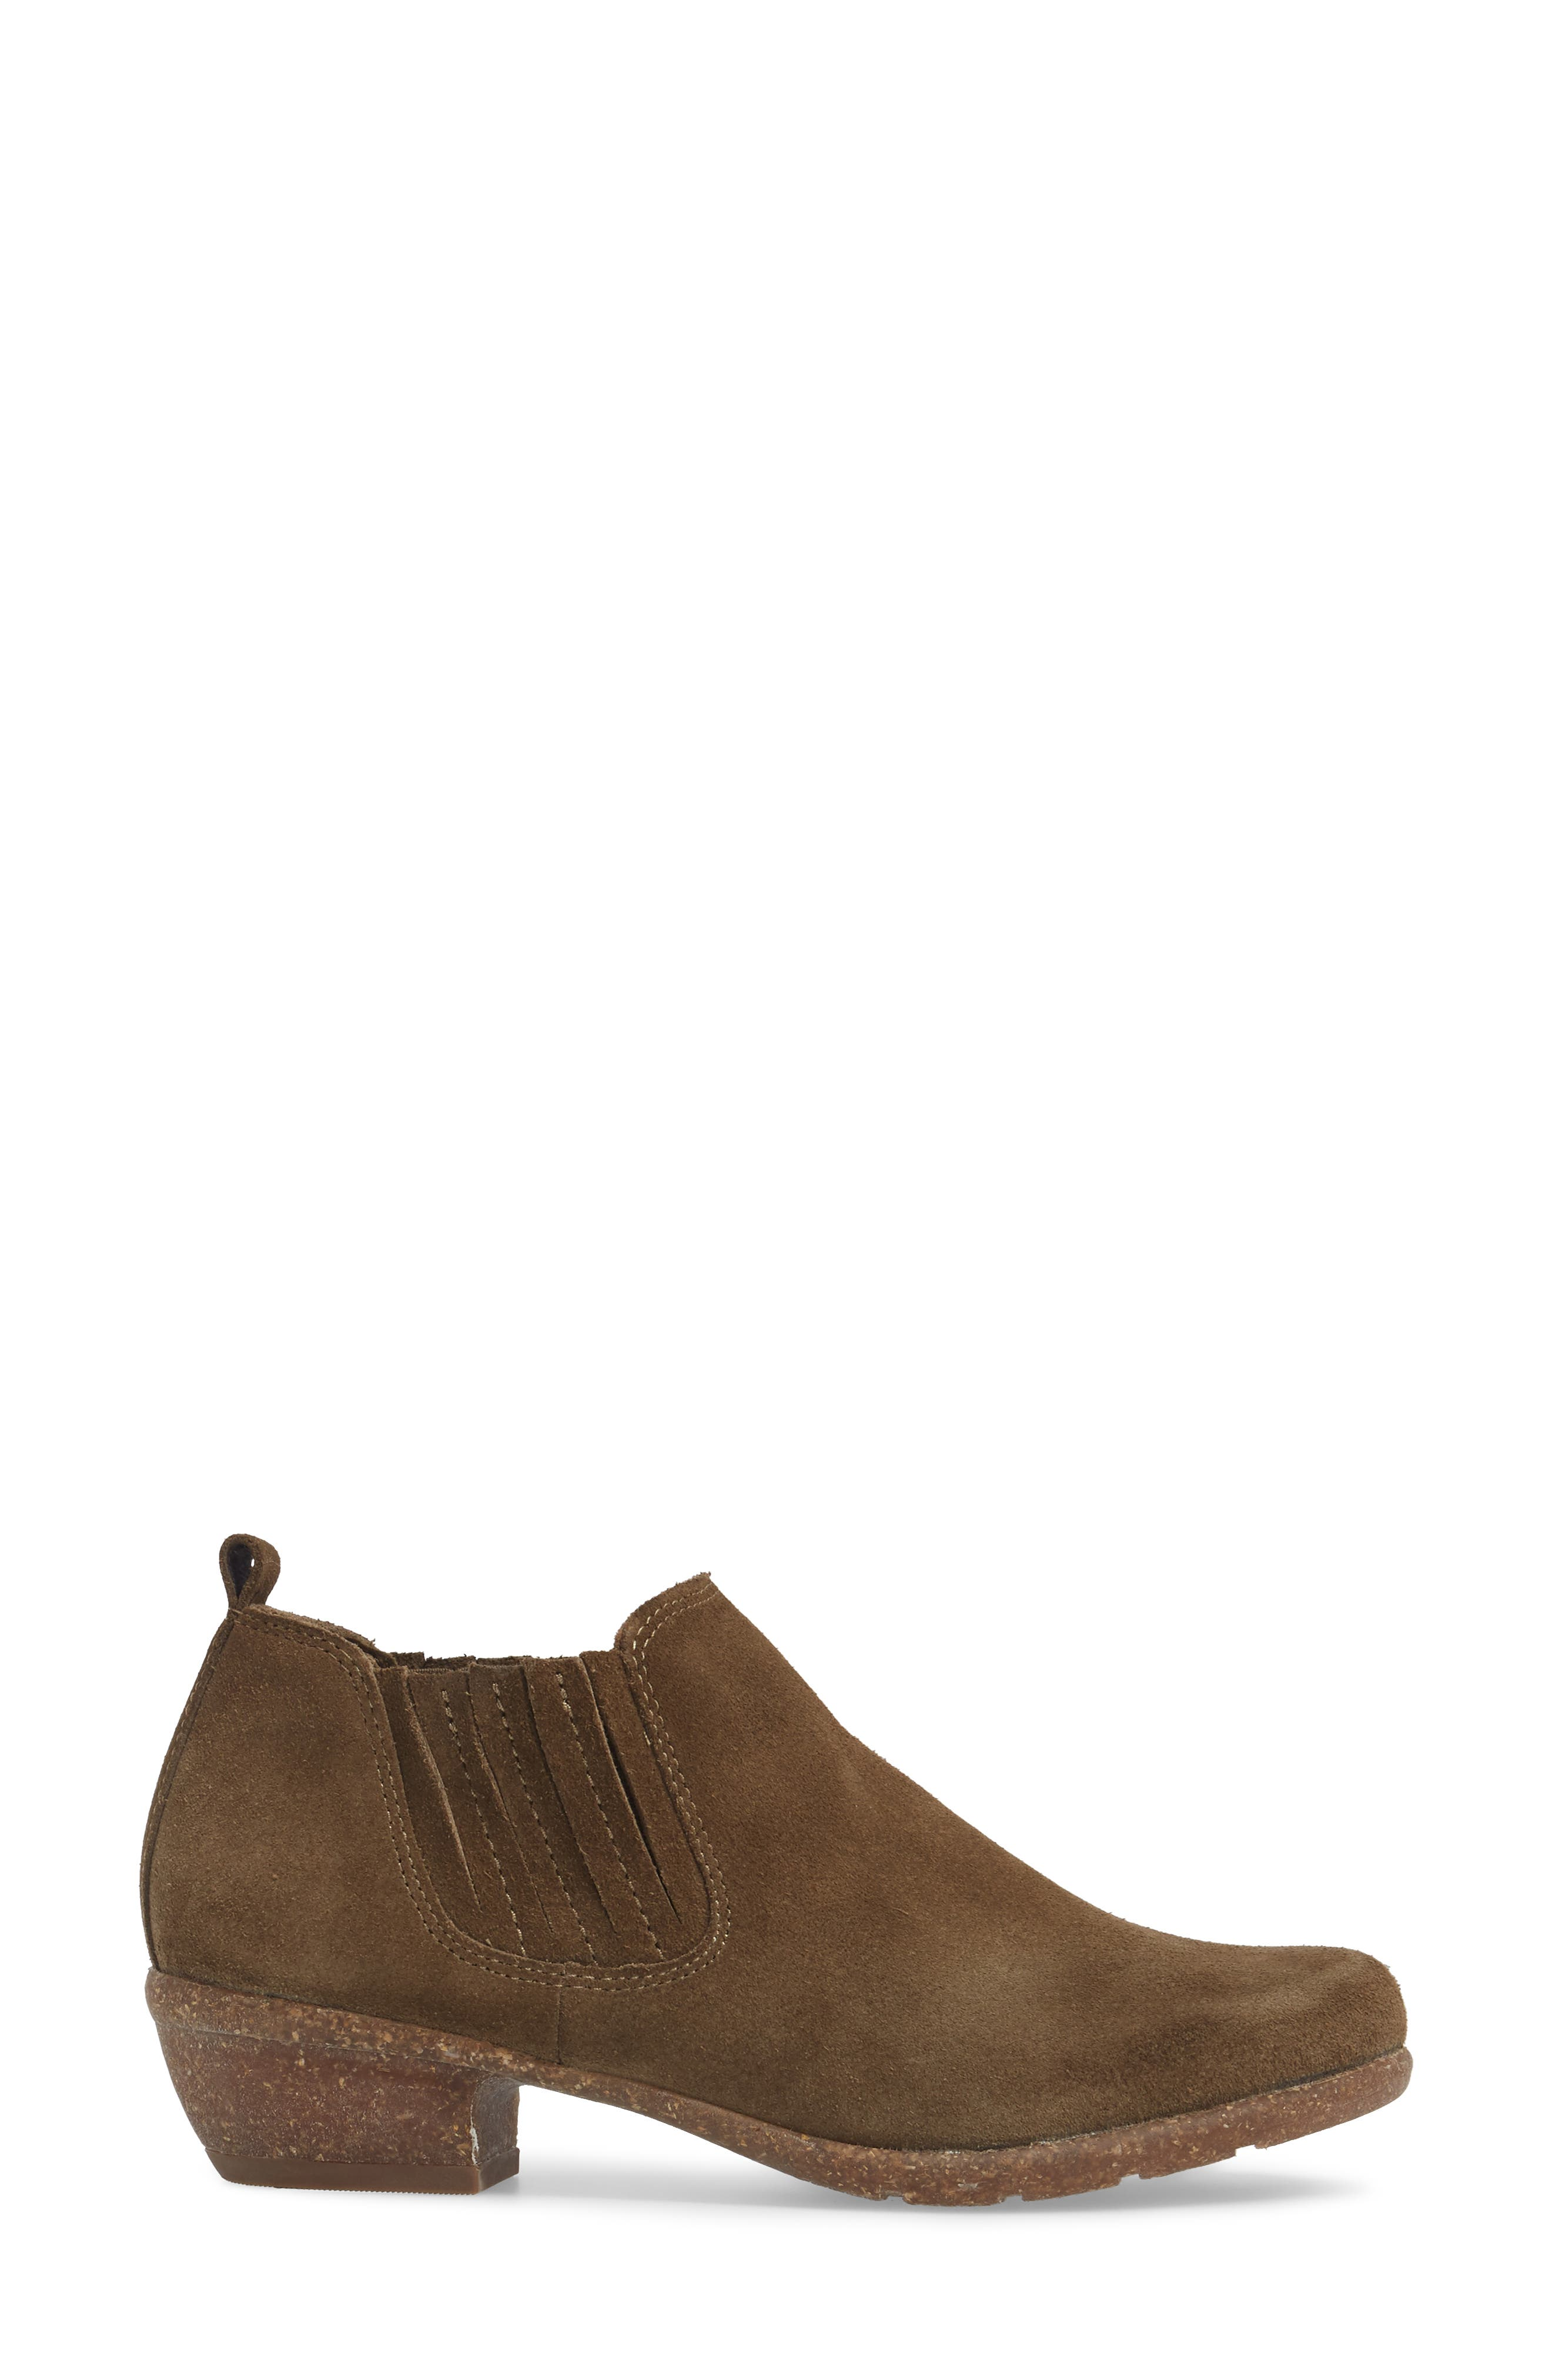 Wilrose Jade Low Chelsea Bootie,                             Alternate thumbnail 3, color,                             Olive Suede